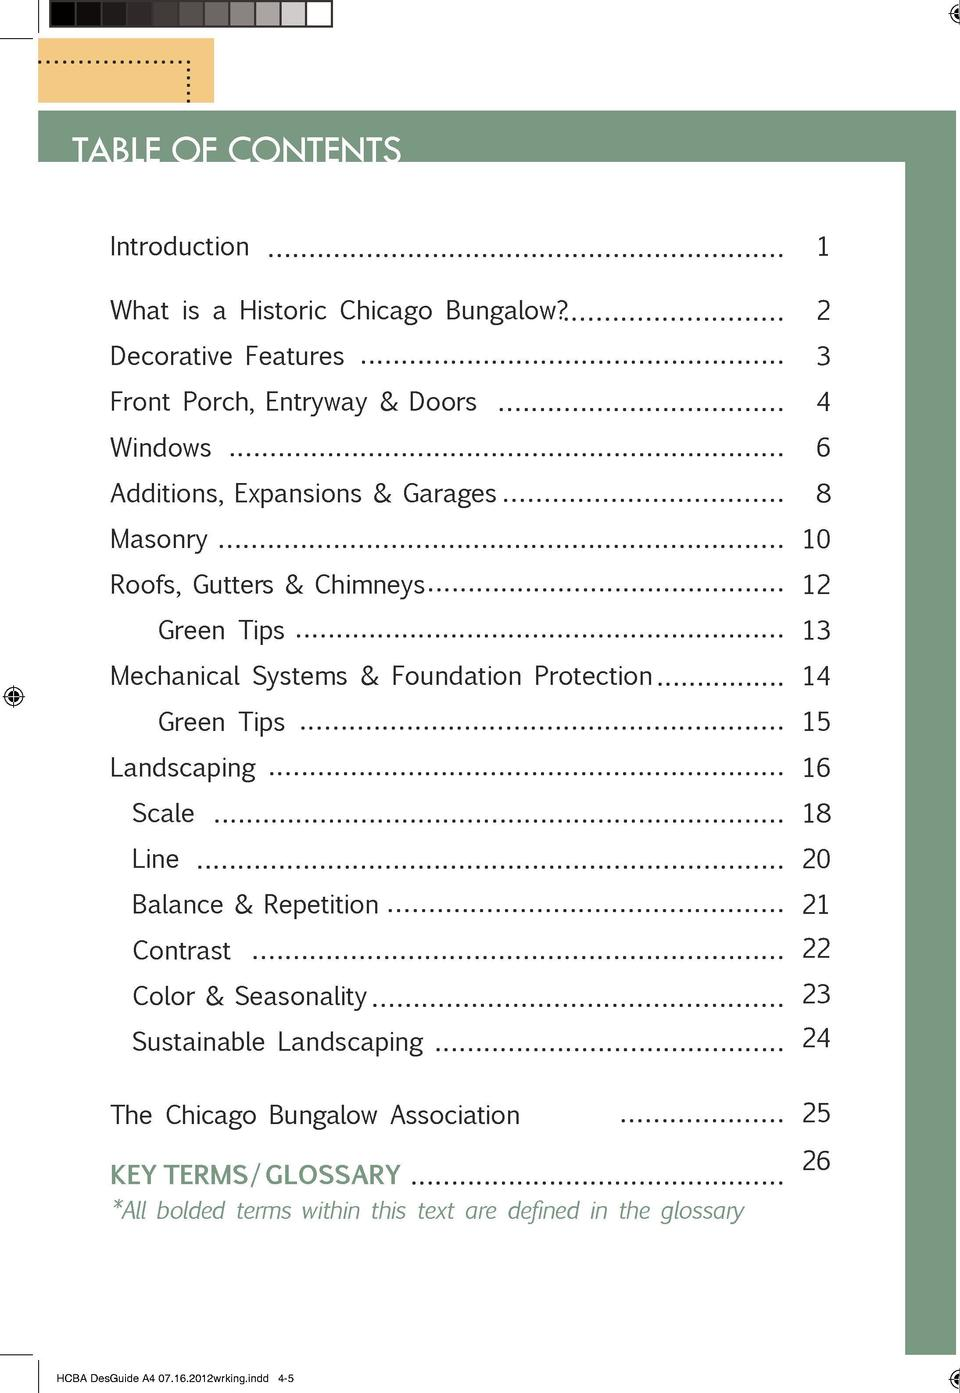 TABLE OF CONTENTS Introduction  INTRODUCTION 1  What is a Historic Chicago Bungalow   2  Decorative Features  3  Front Por...